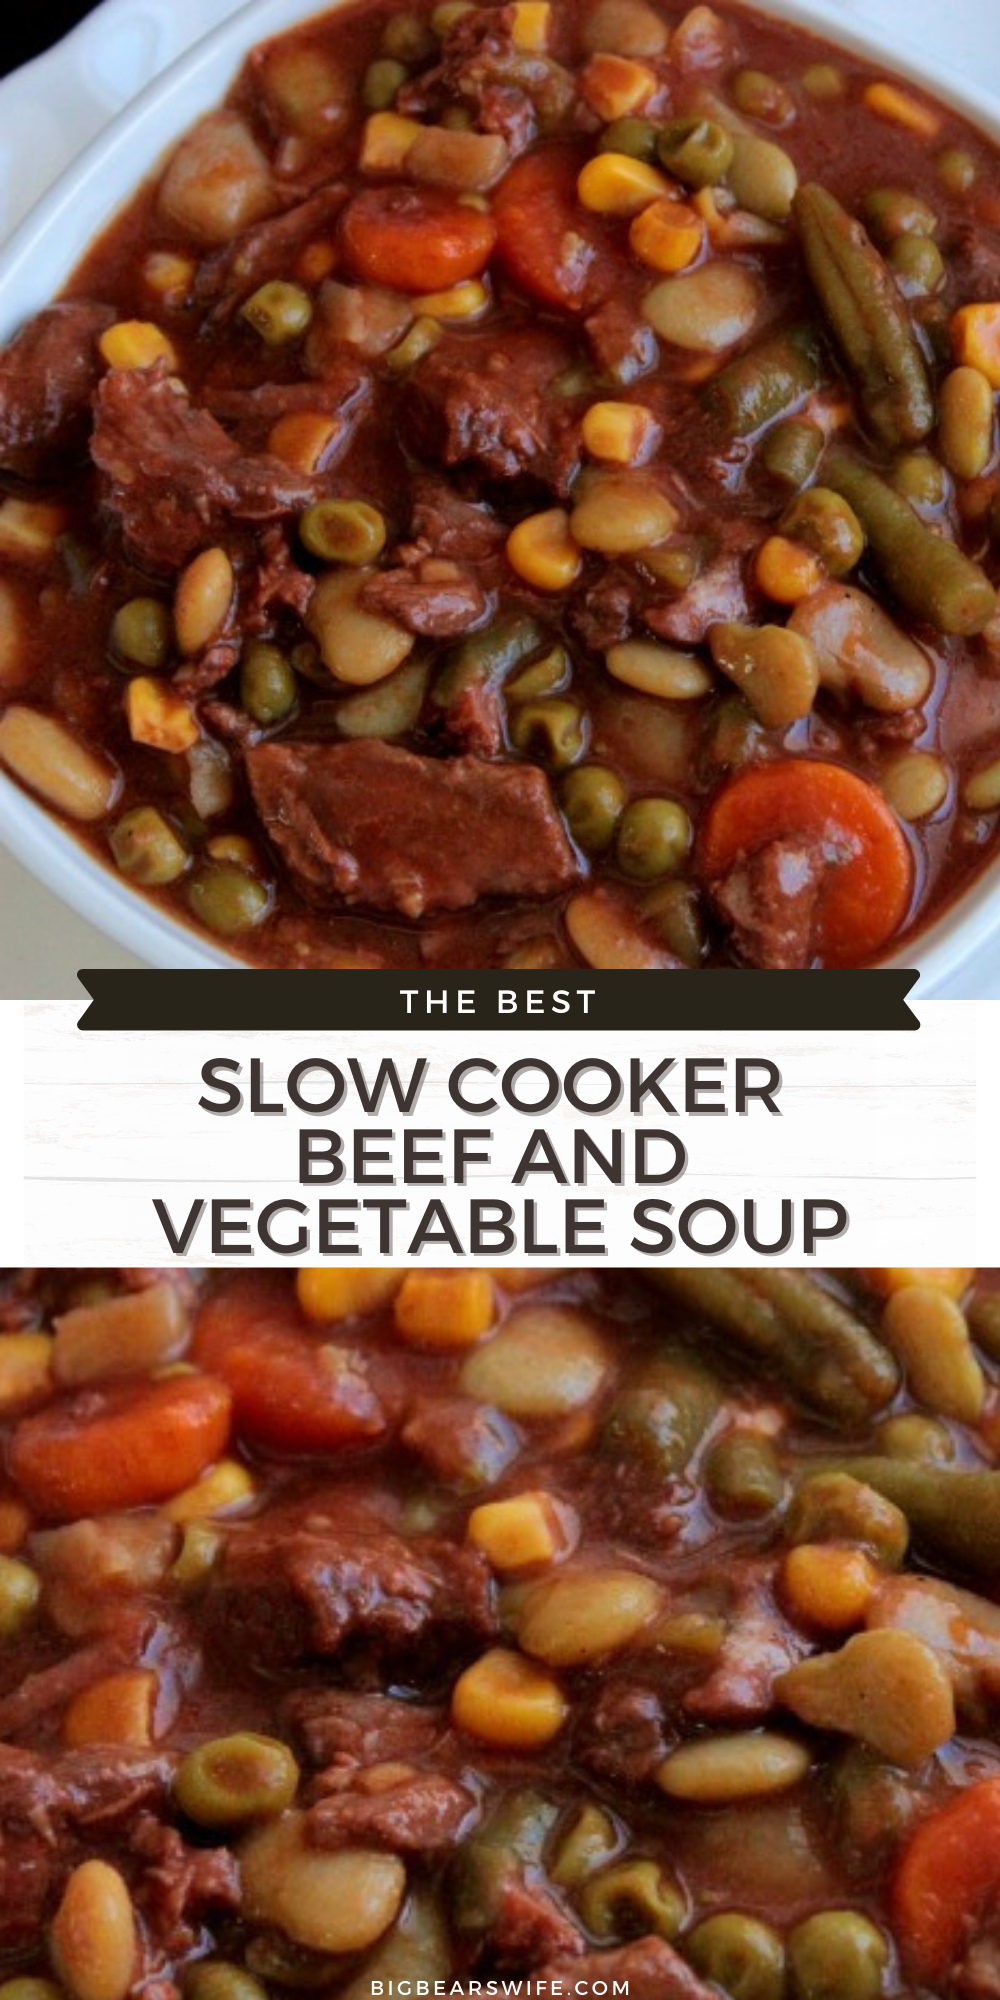 A Slow Cooker Beef and Vegetable Soup that is inspired by my grandmother's vegetable soup! We love this and make it all the time!  via @bigbearswife